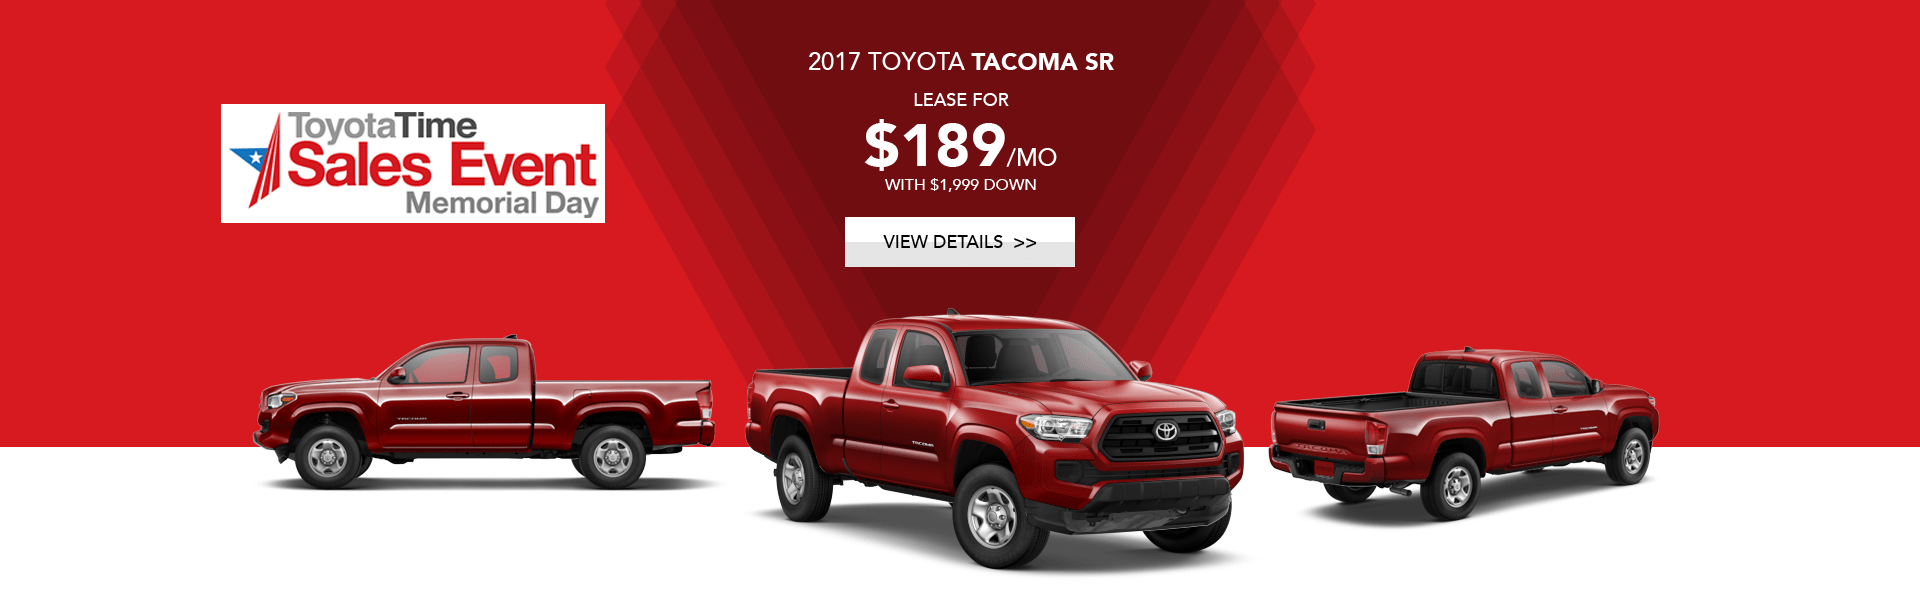 Toyota Tacoma Special Offer